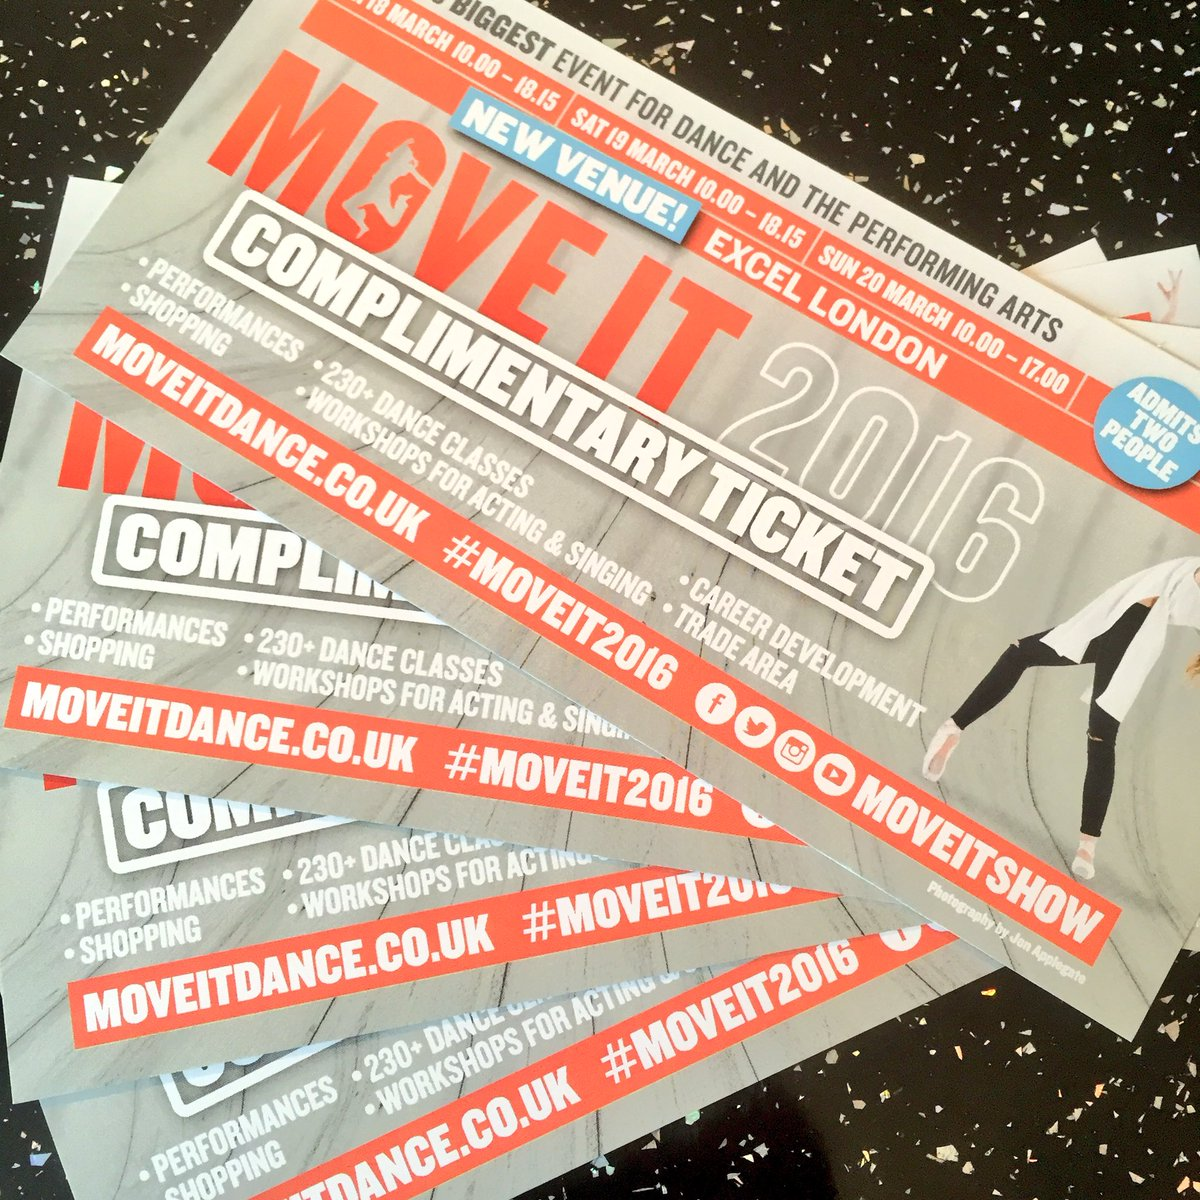 #DANCERS do u want to #WIN #FREE tix to @MOVEITSHOW this #weekend? Simply #RT & follow #OfficialCharity #MoveIt2016